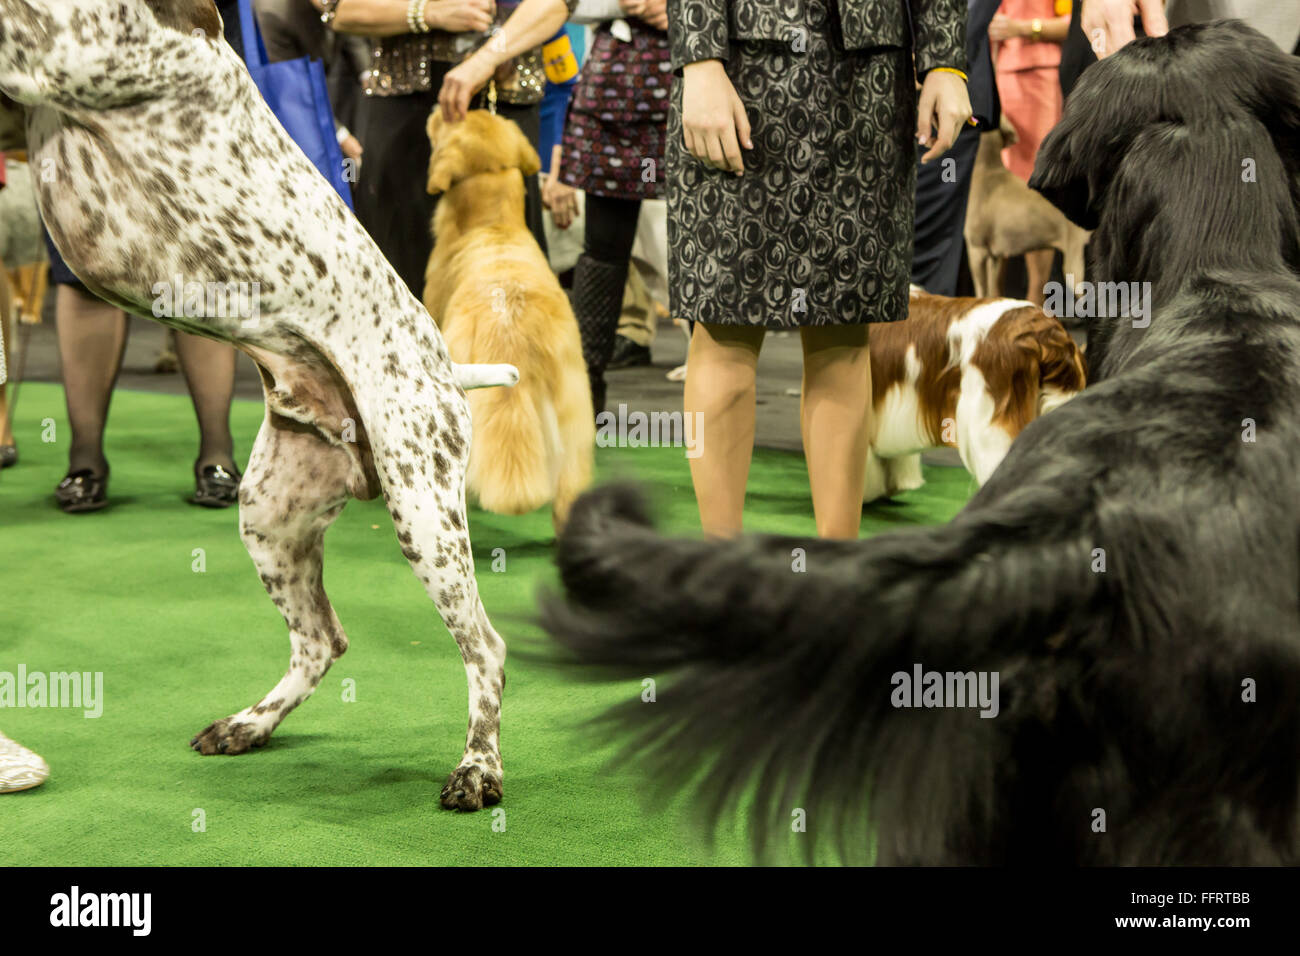 New York, USA. 16th February, 2016. Excited dogs wag their tails preparing to enter the ring  at the 140th Westminster - Stock Image